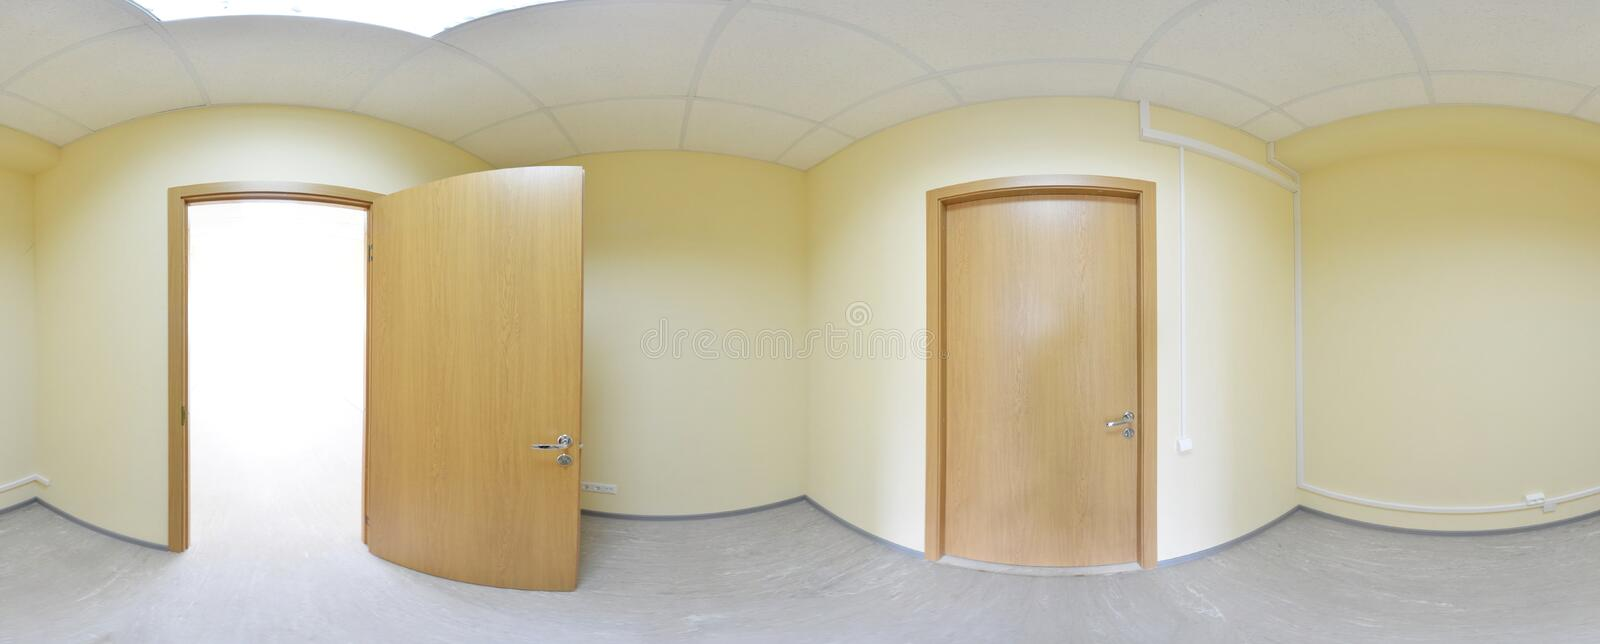 360 panorama view in modern empty apartment interior, degrees seamless panorama. stock photo